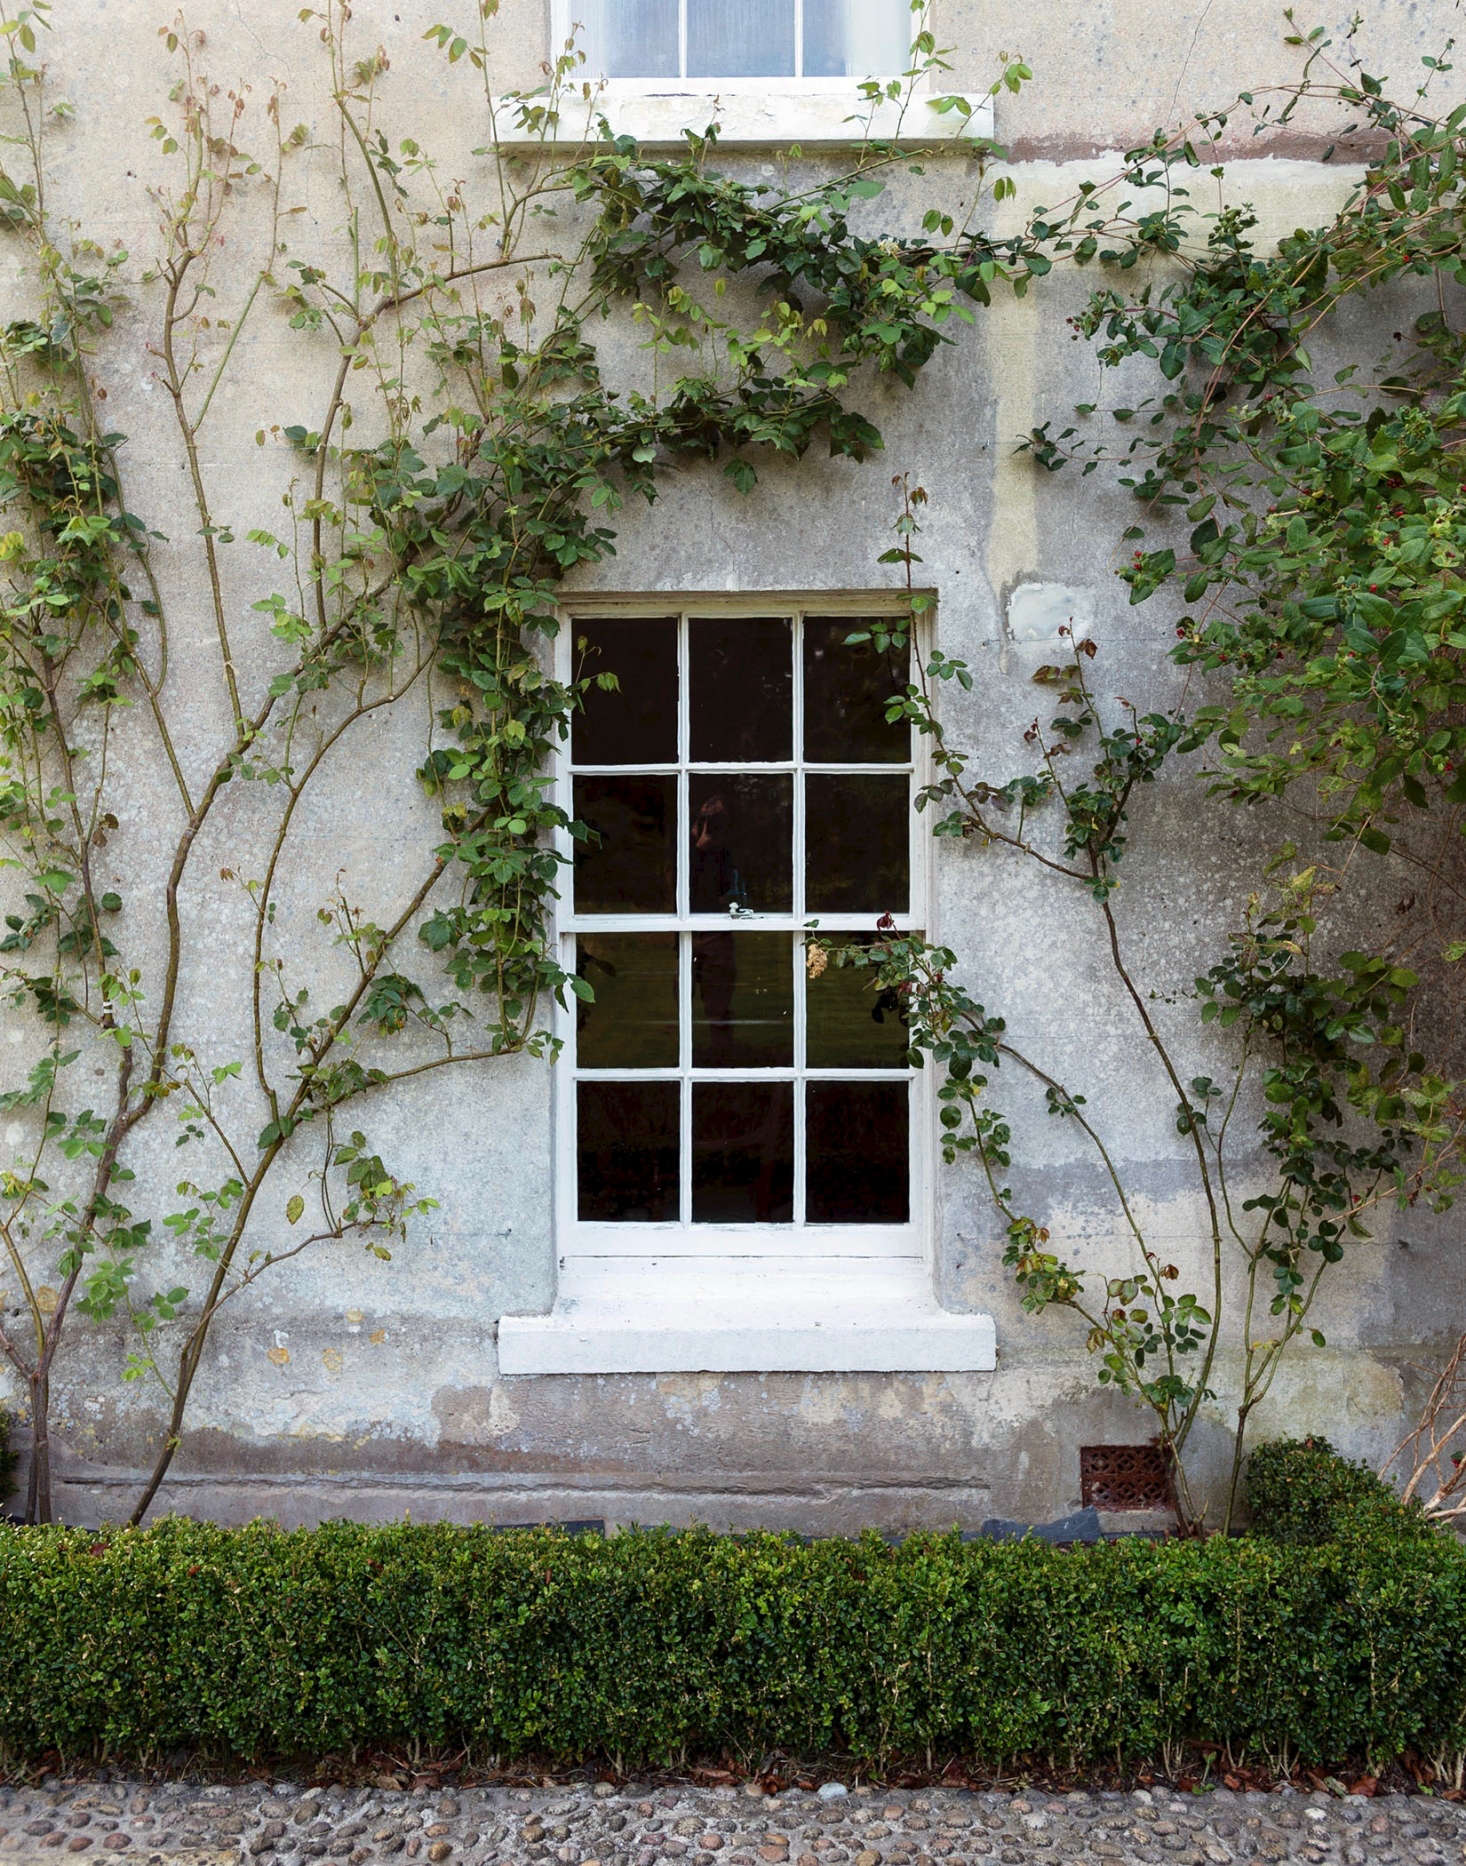 Foundation plantings of boxwood and rose vines connect the facade of Pentreath and McCormick&#8